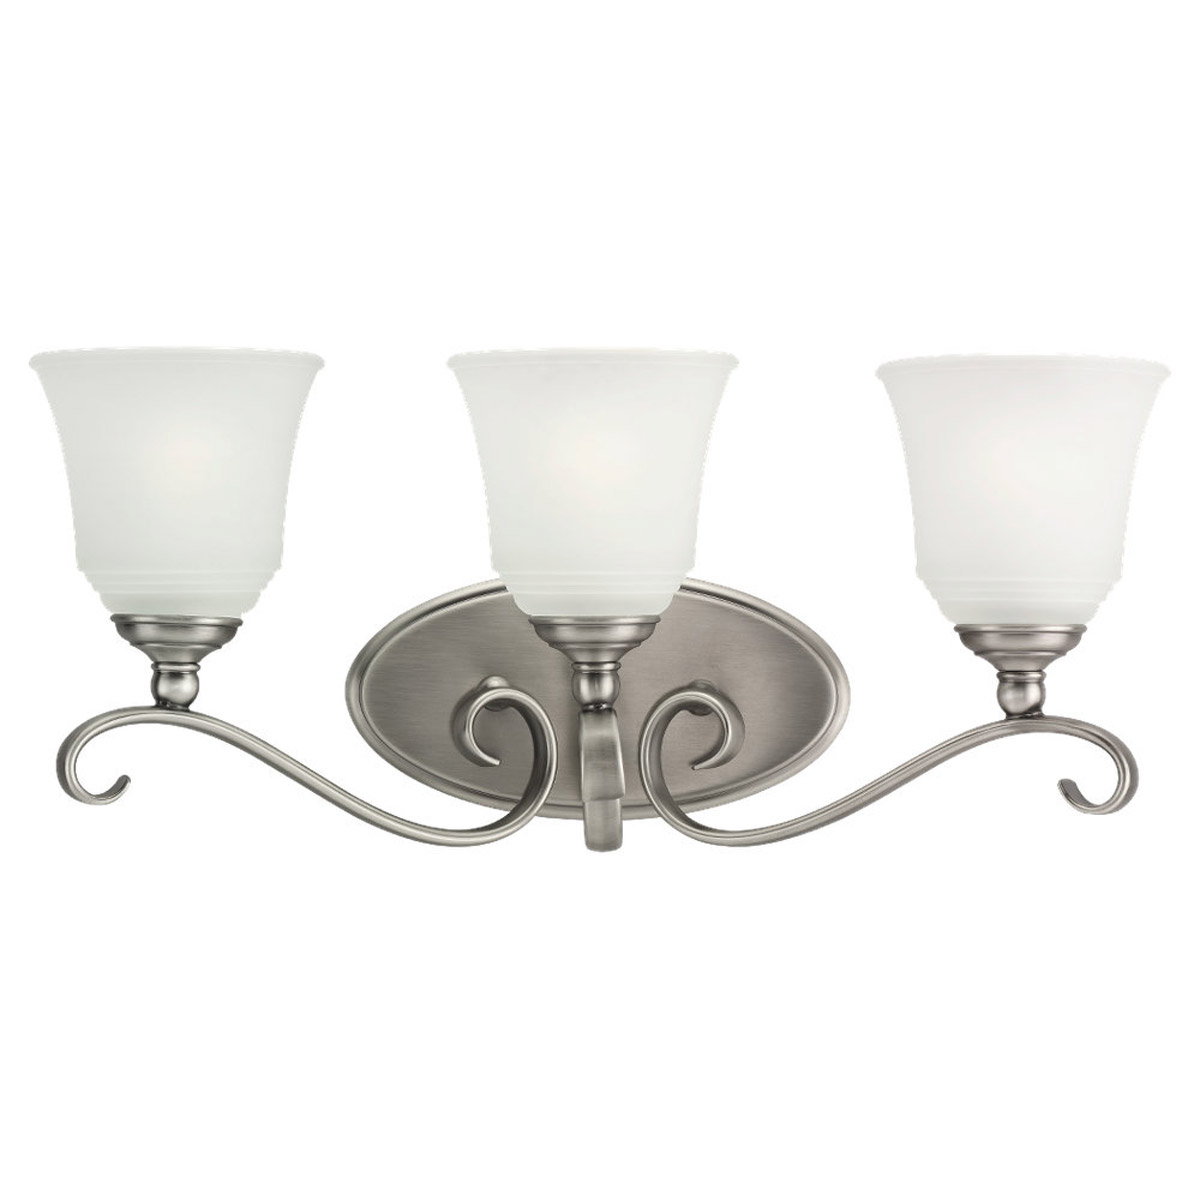 Sea Gull Lighting Parkview 3 Light Bath Vanity in Antique Brushed Nickel 49382BLE-965